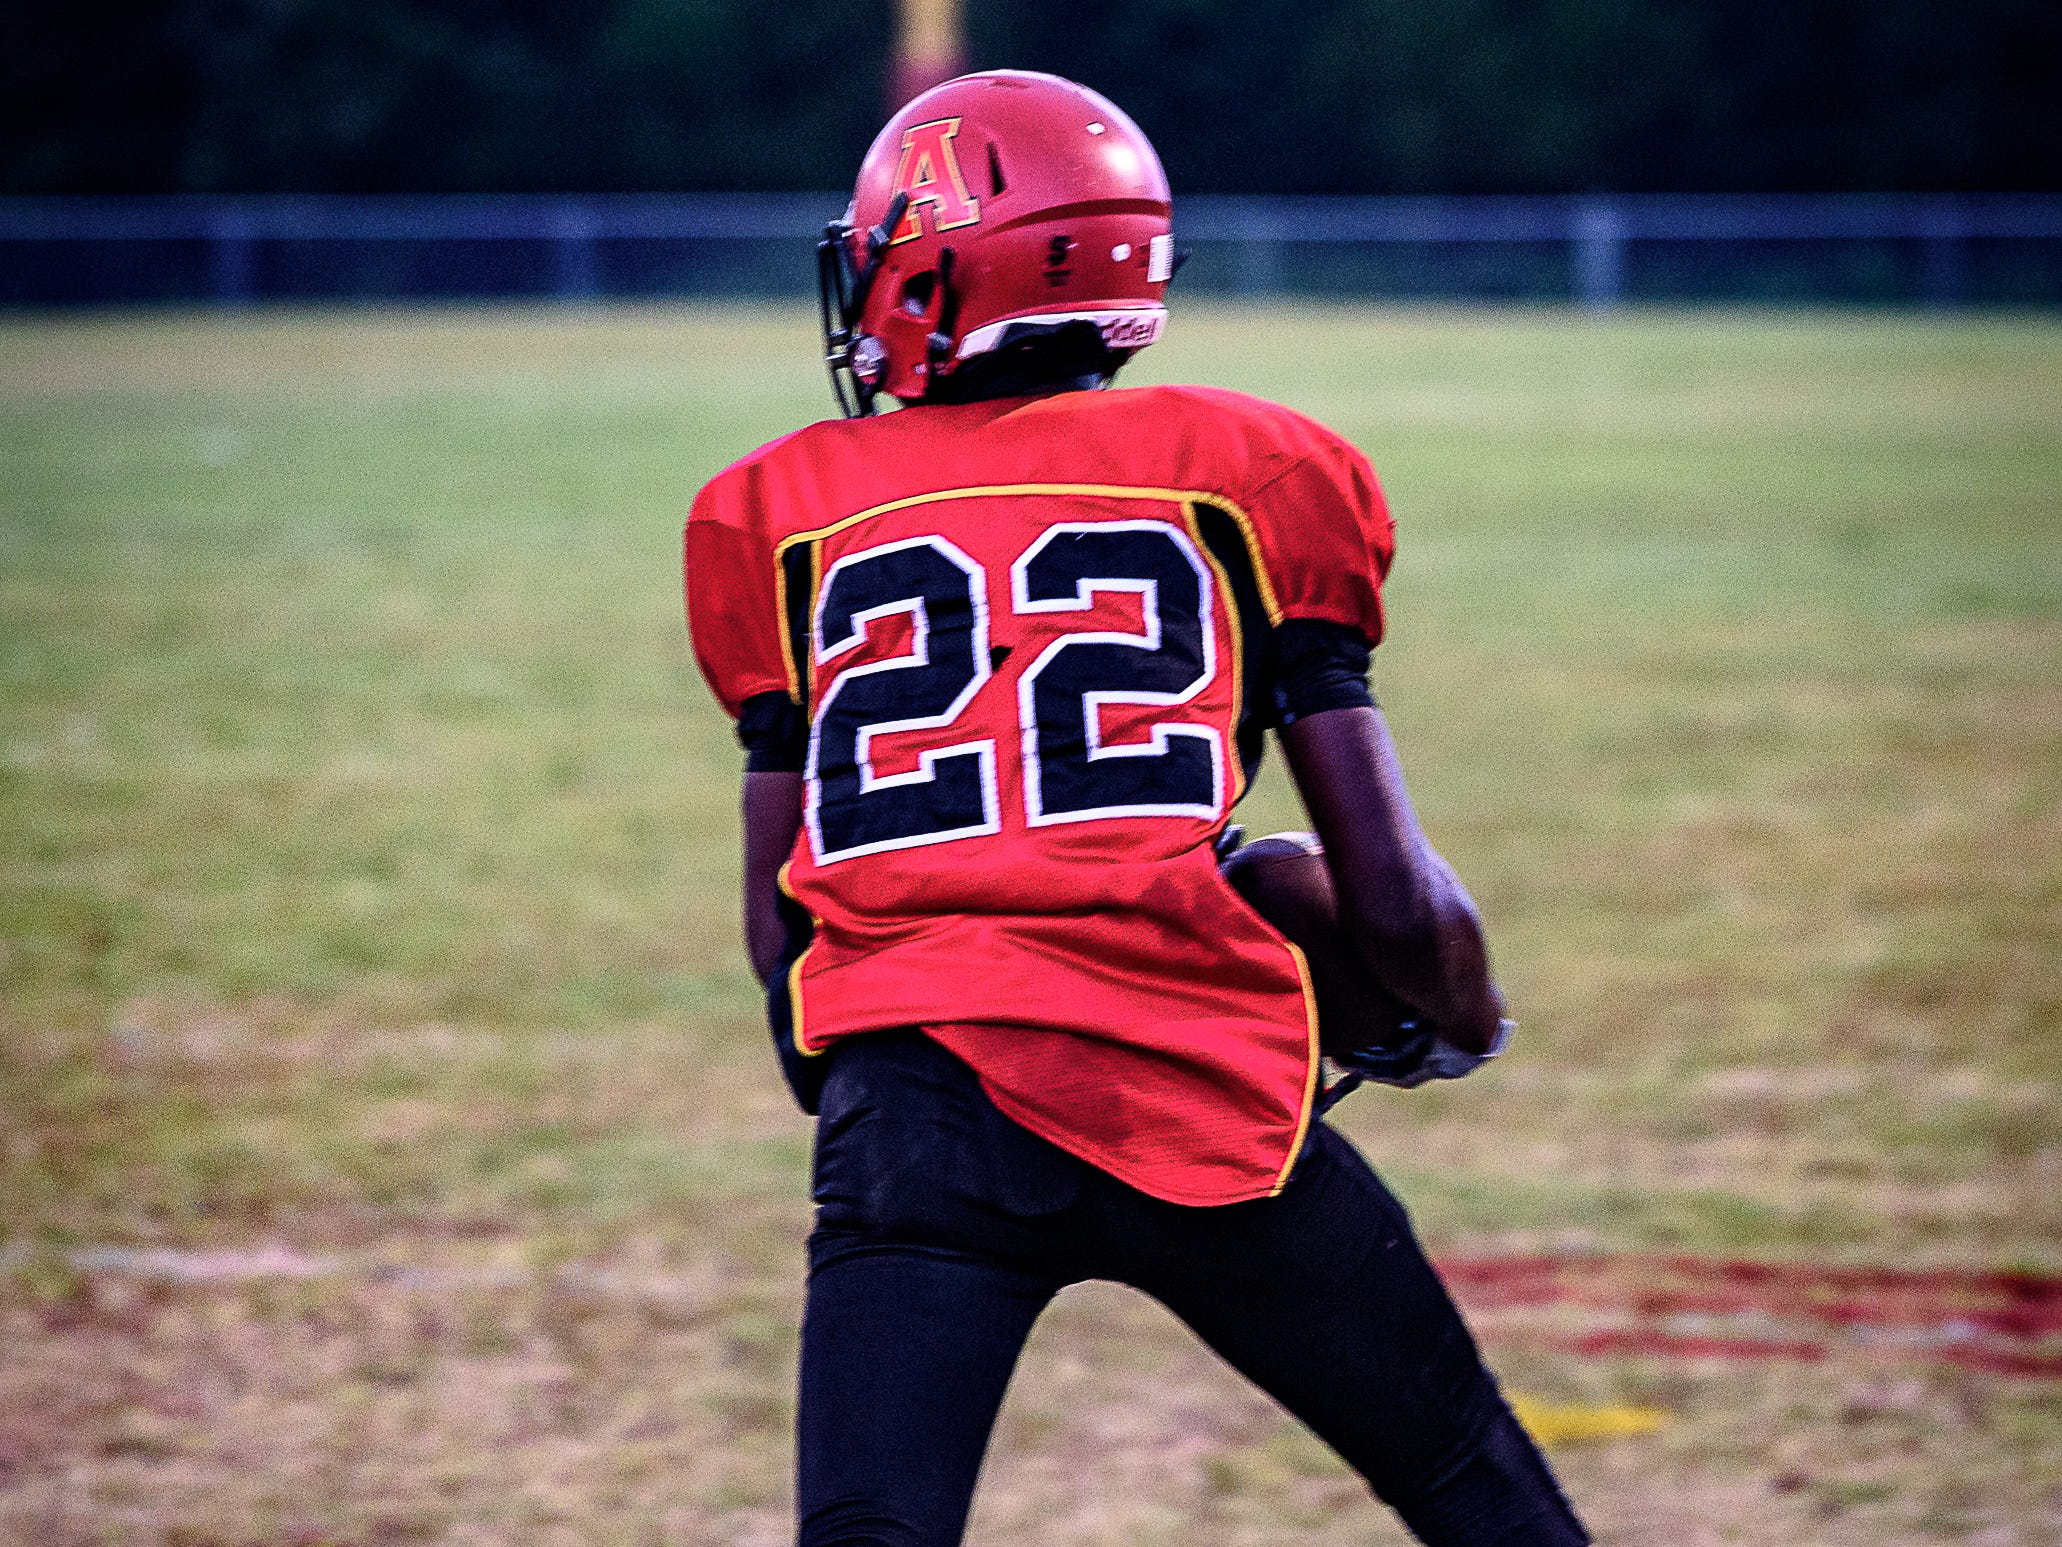 Arcadia's Jaden Hope runs the ball downfield during the game against Stephen Decatur High School of Berlin, Maryland.